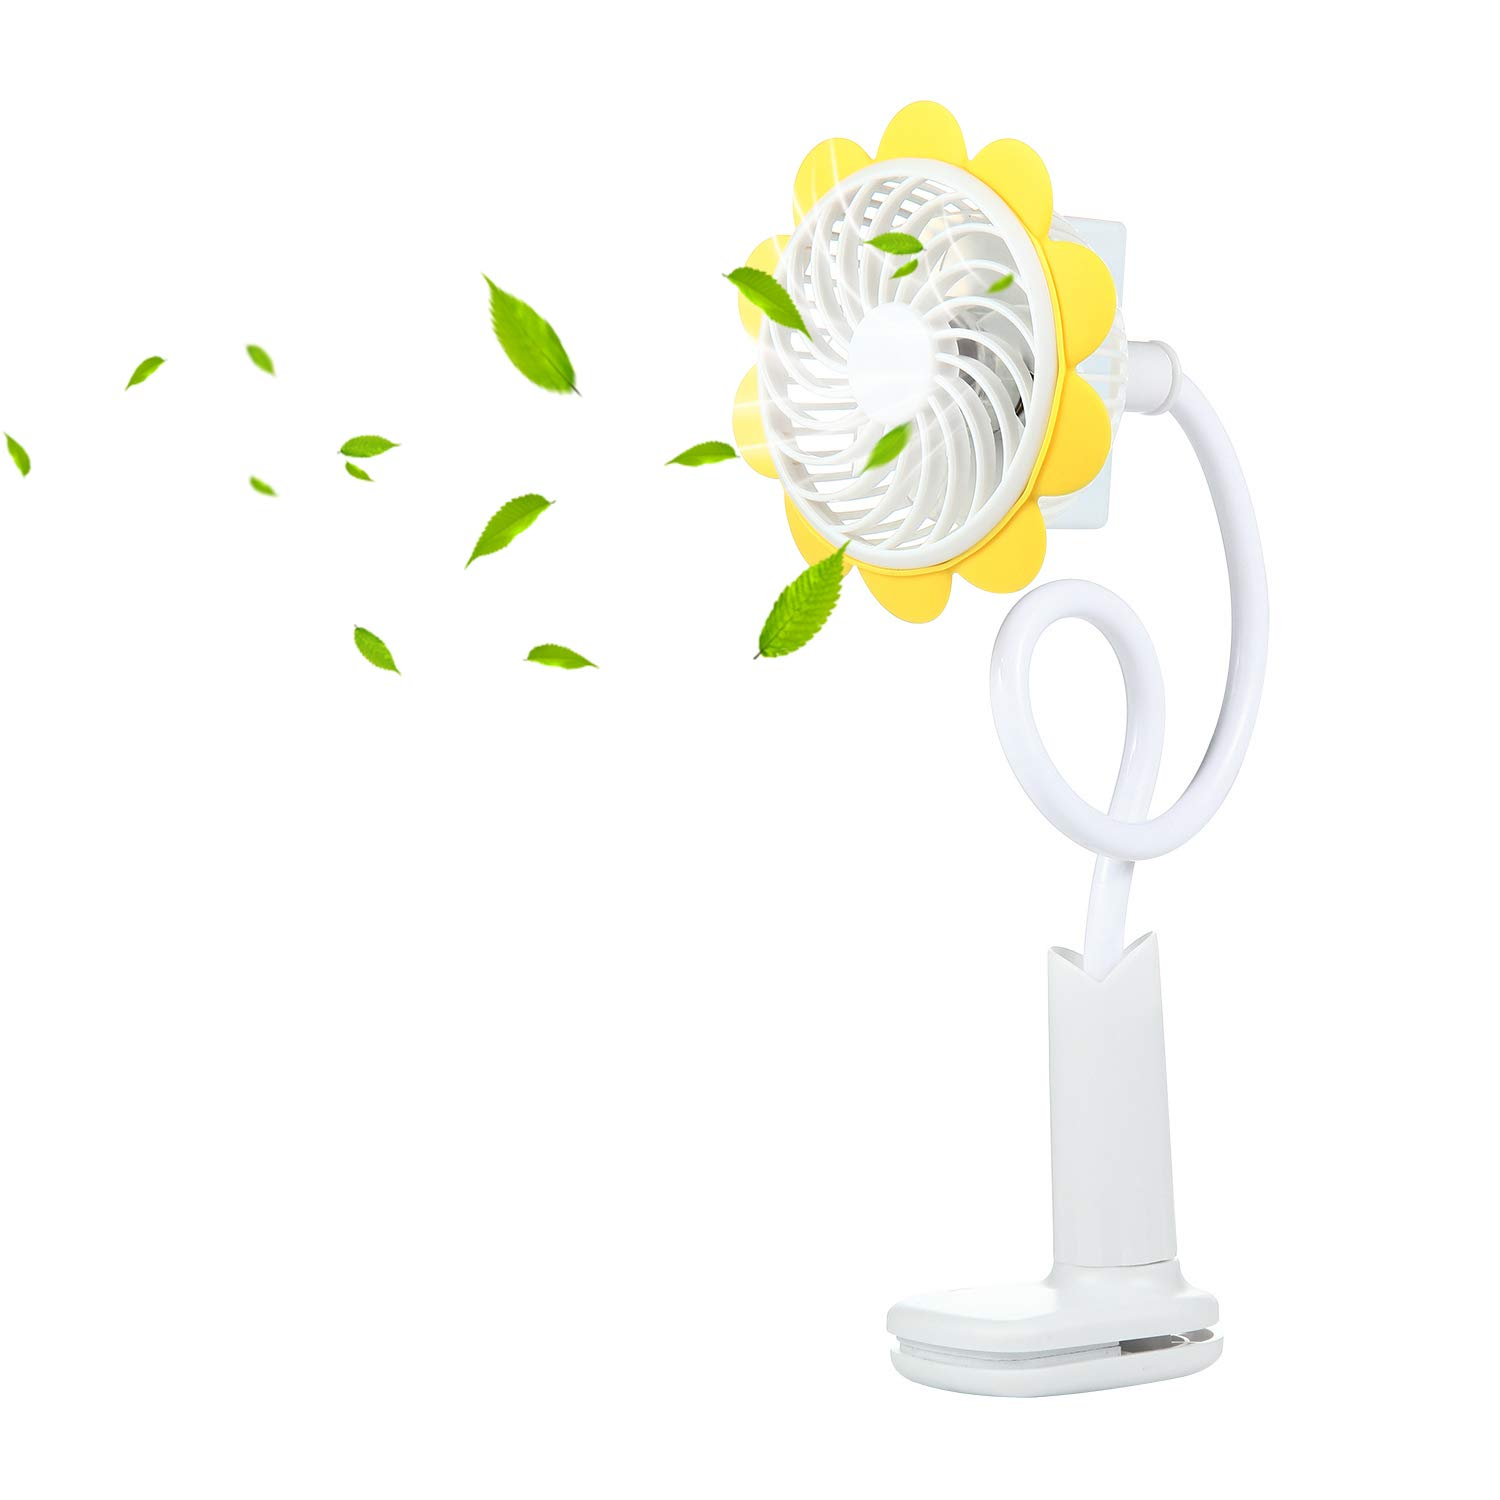 Baby Stroller Fan FOONEE USB Clip Fan 360° Adjustable Clip Desk Fan Sunflower Shaped Clip Fan Rechargeable Clip Mini Fan Stroller Fan Clip on Bed Desk